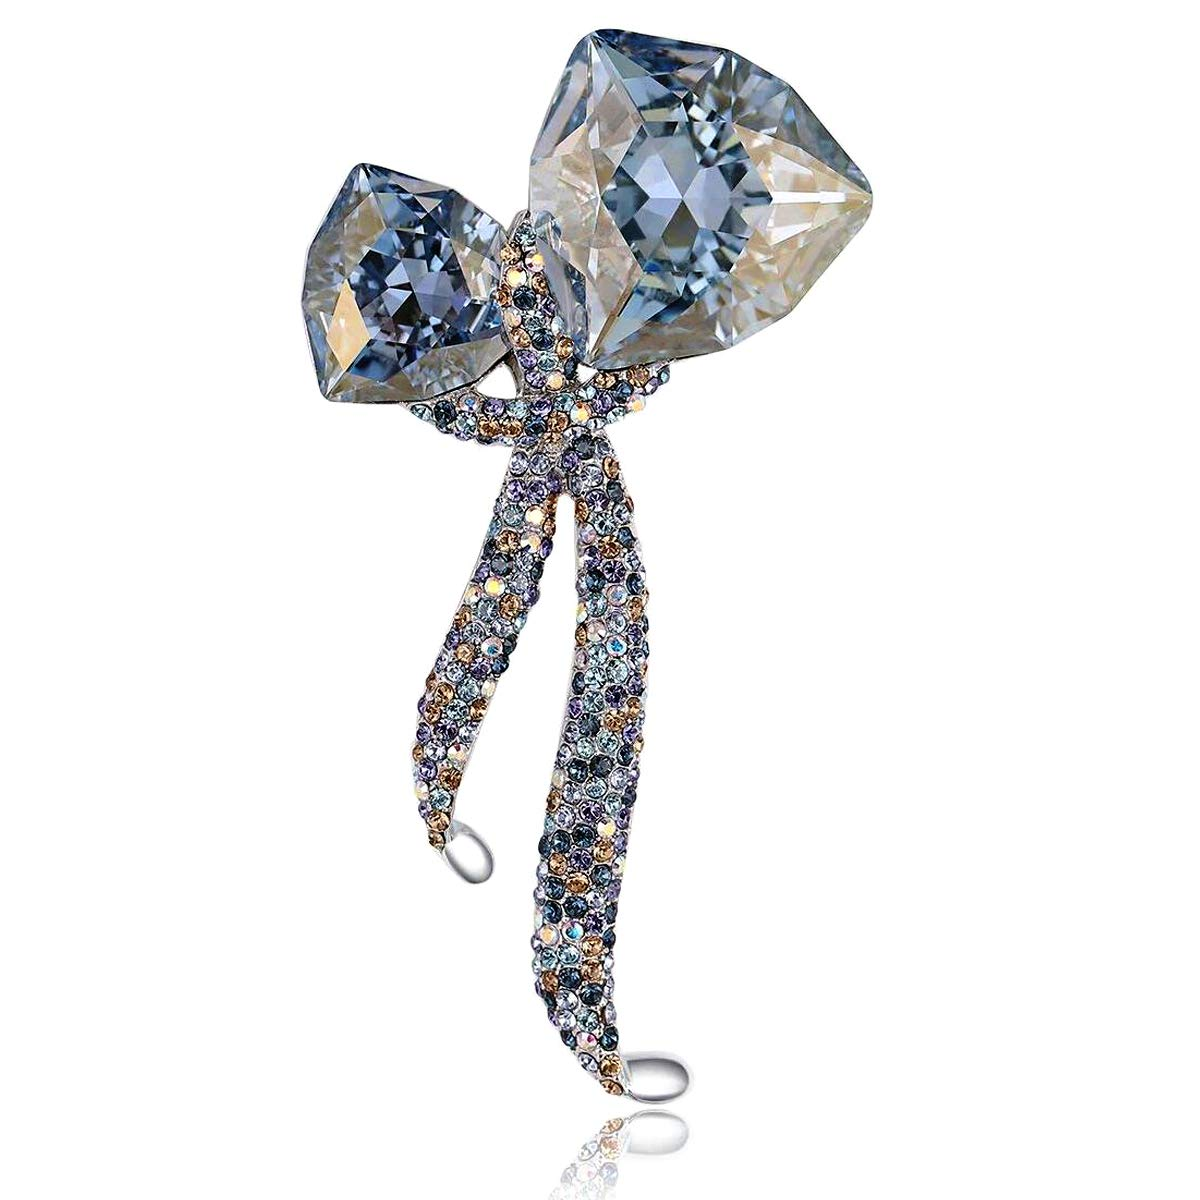 RAINBOW BOX Large Brooches for Women with Swarovski Crystal Jewelry Women's Brooches & Pins